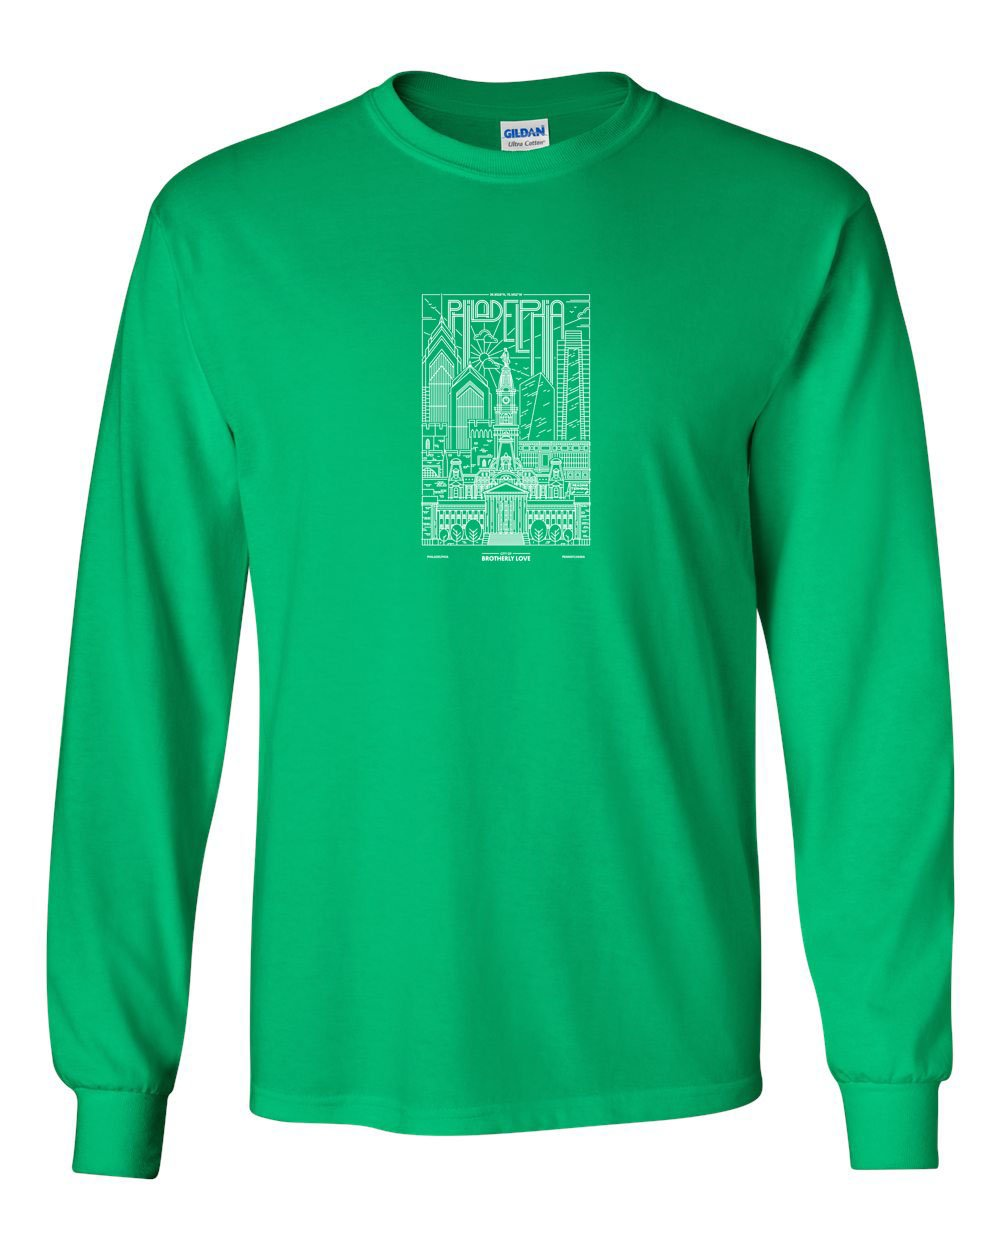 Philadelphia Skyline V2 (Football) MENS Long Sleeve Heavy Cotton T-Shirt